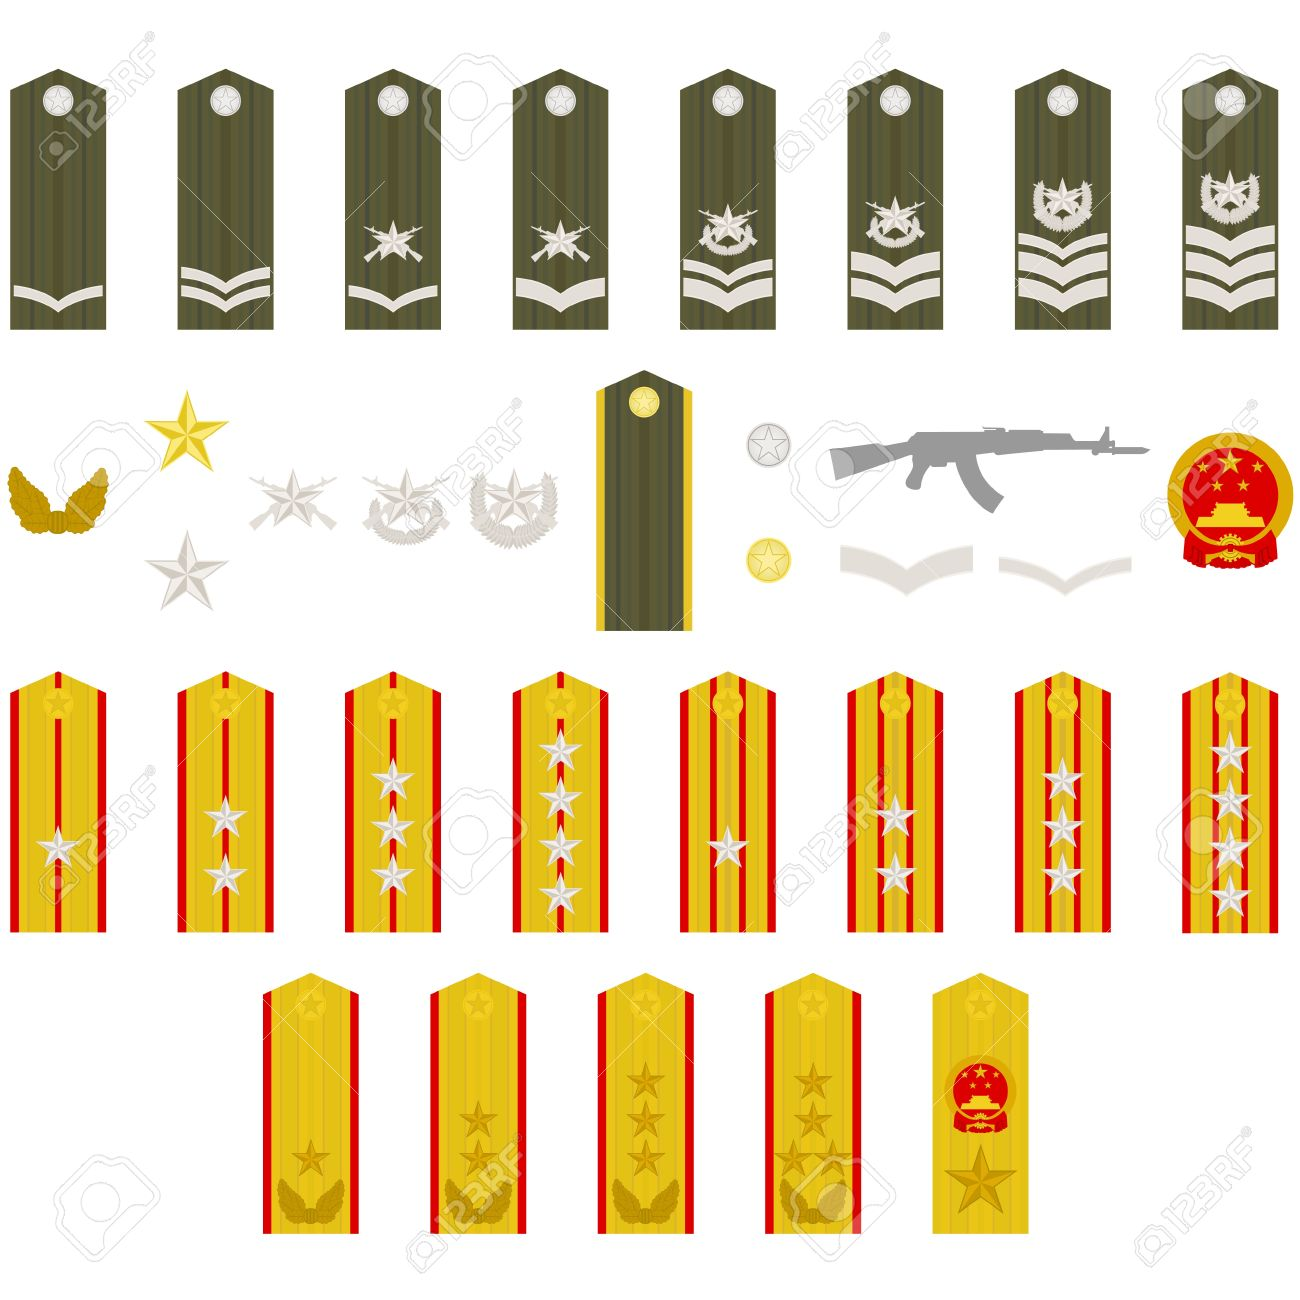 940 Military Rank Cliparts, Stock Vector And Royalty Free Military.